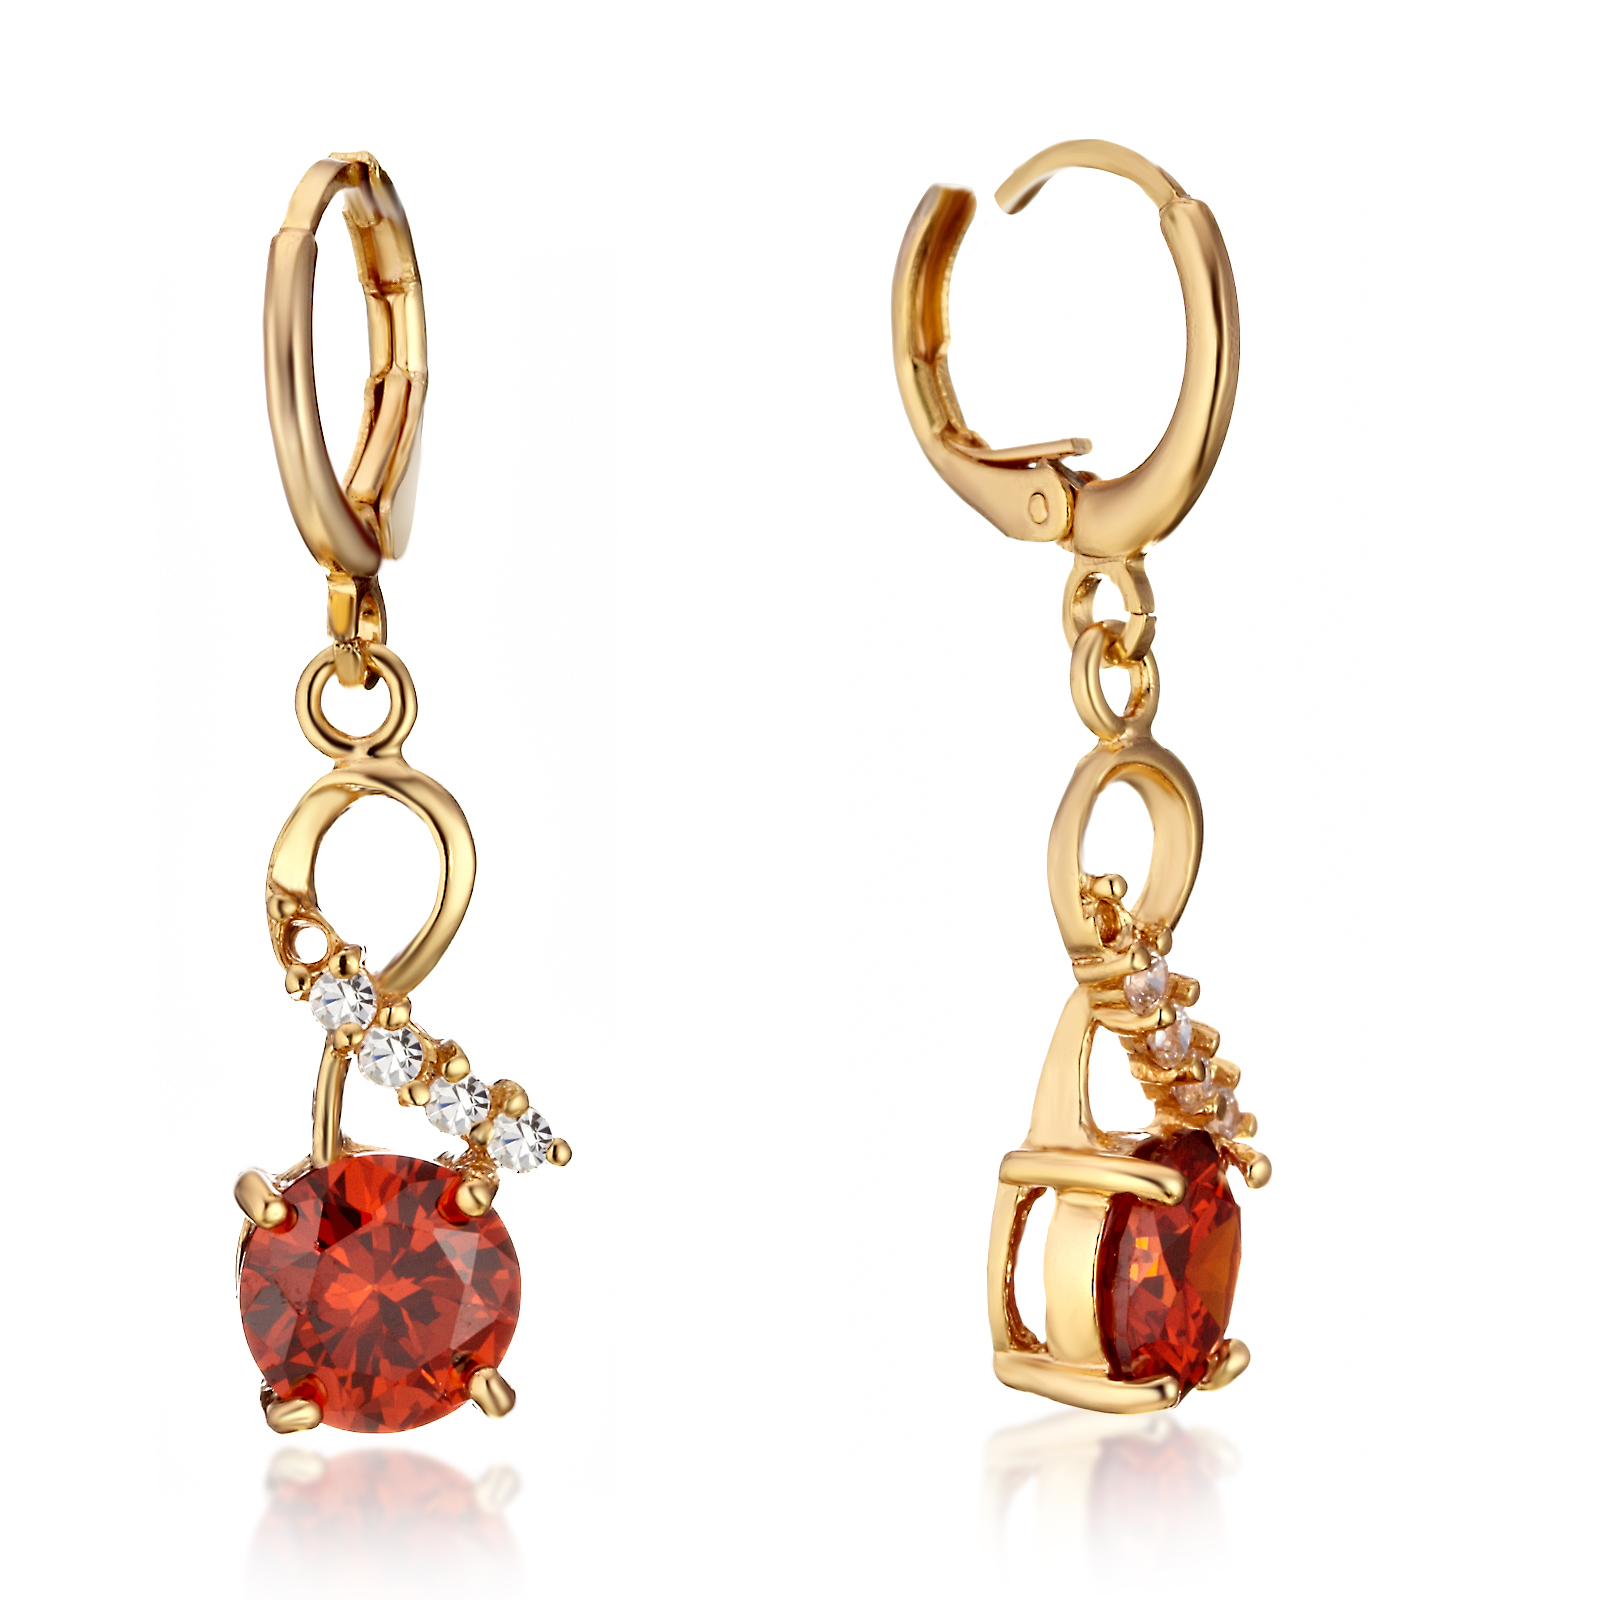 Gemini Women Jewelry 18K Gold Filled Created Ruby Leverback Dangle Huggies Earrings Gm154 , Size: 35mm , Color: Yellow Gold